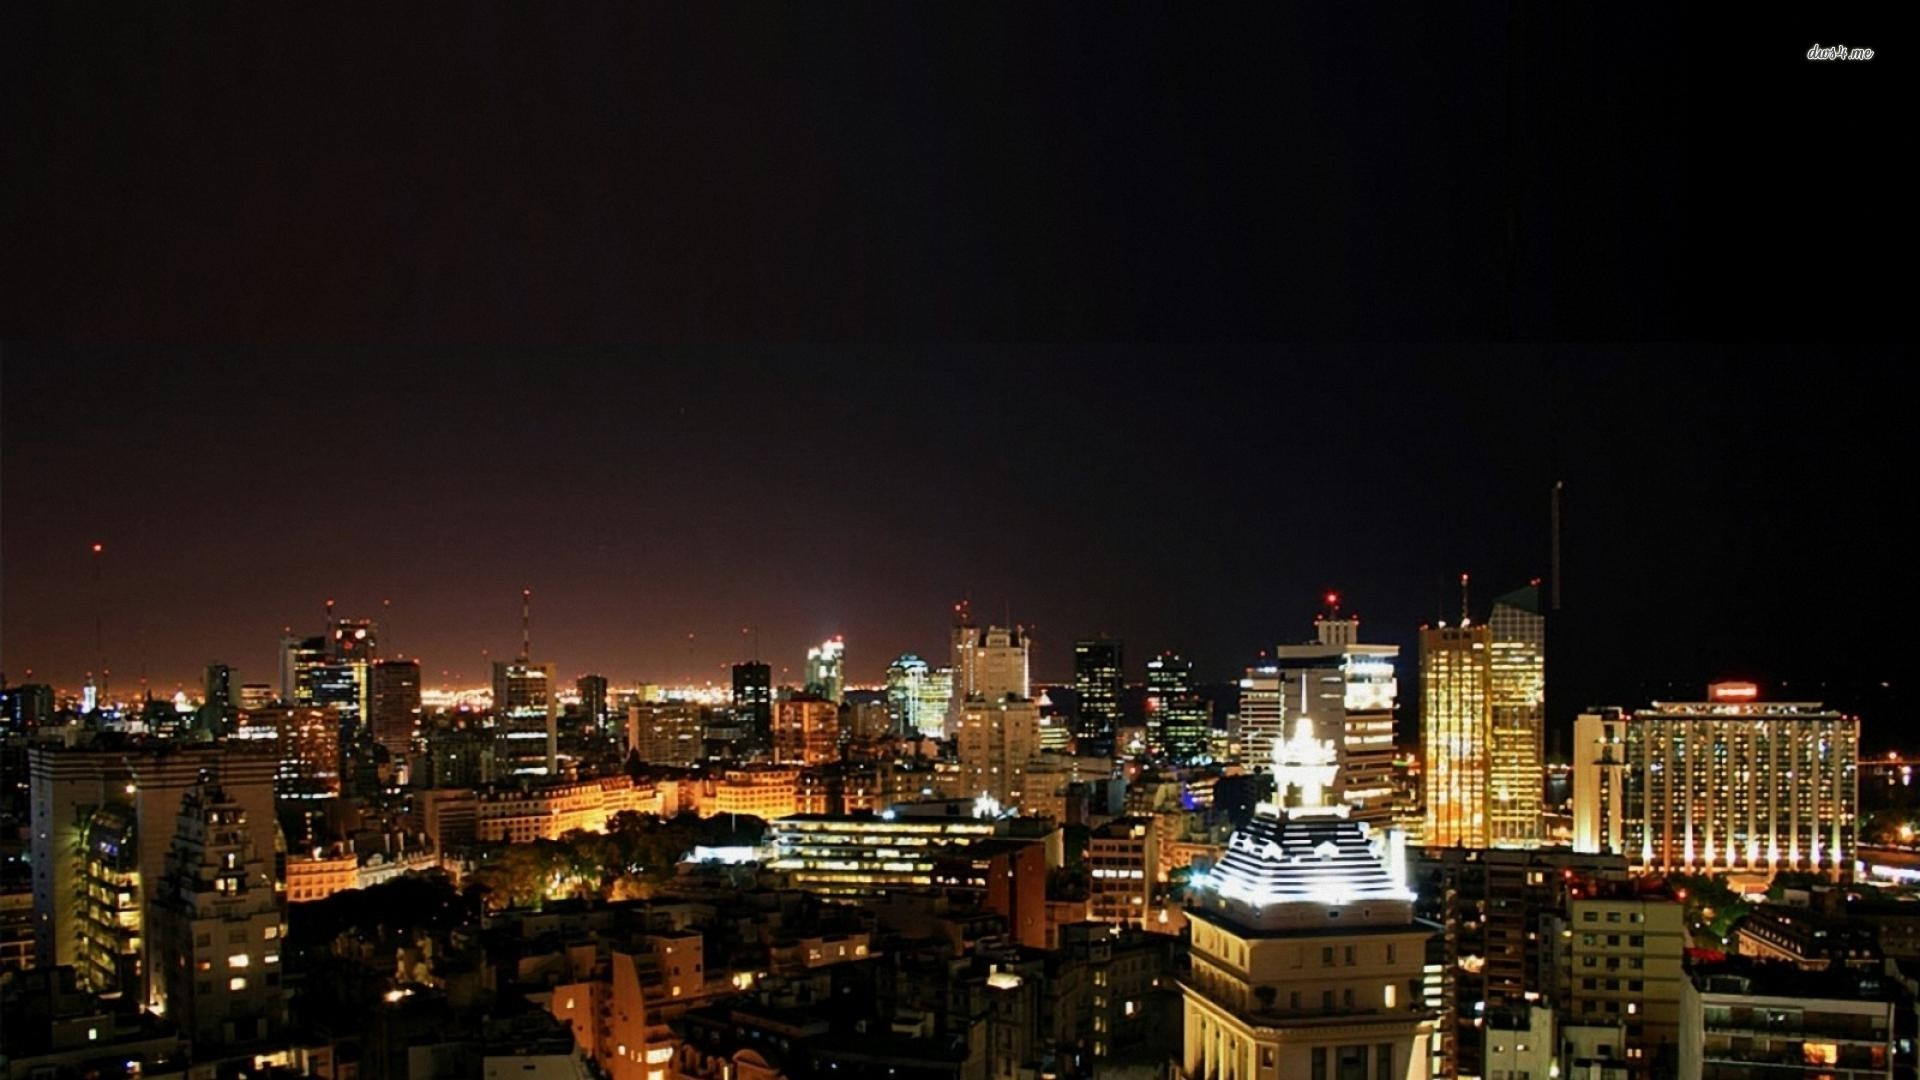 ... Buenos Aires at night wallpaper 1920x1080 ...